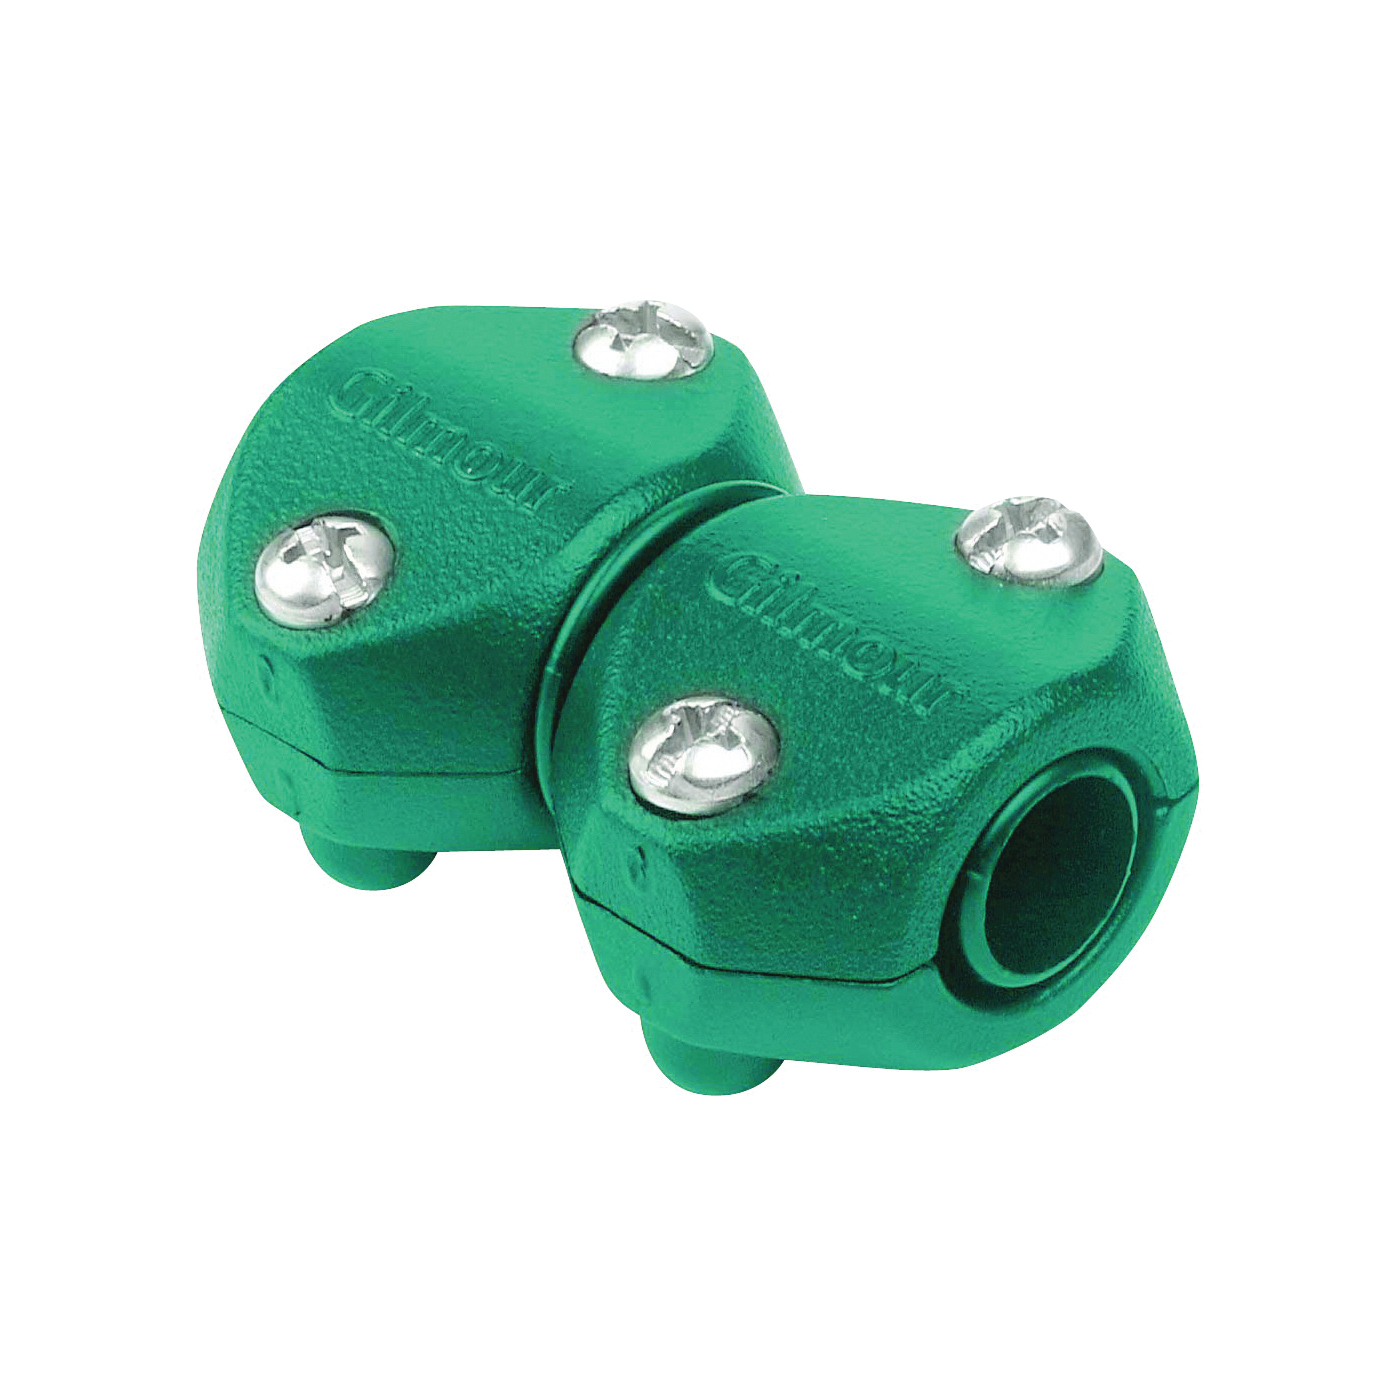 Picture of Gilmour 805044-1001 Hose Mender, 1/2 in, Polymer, Green